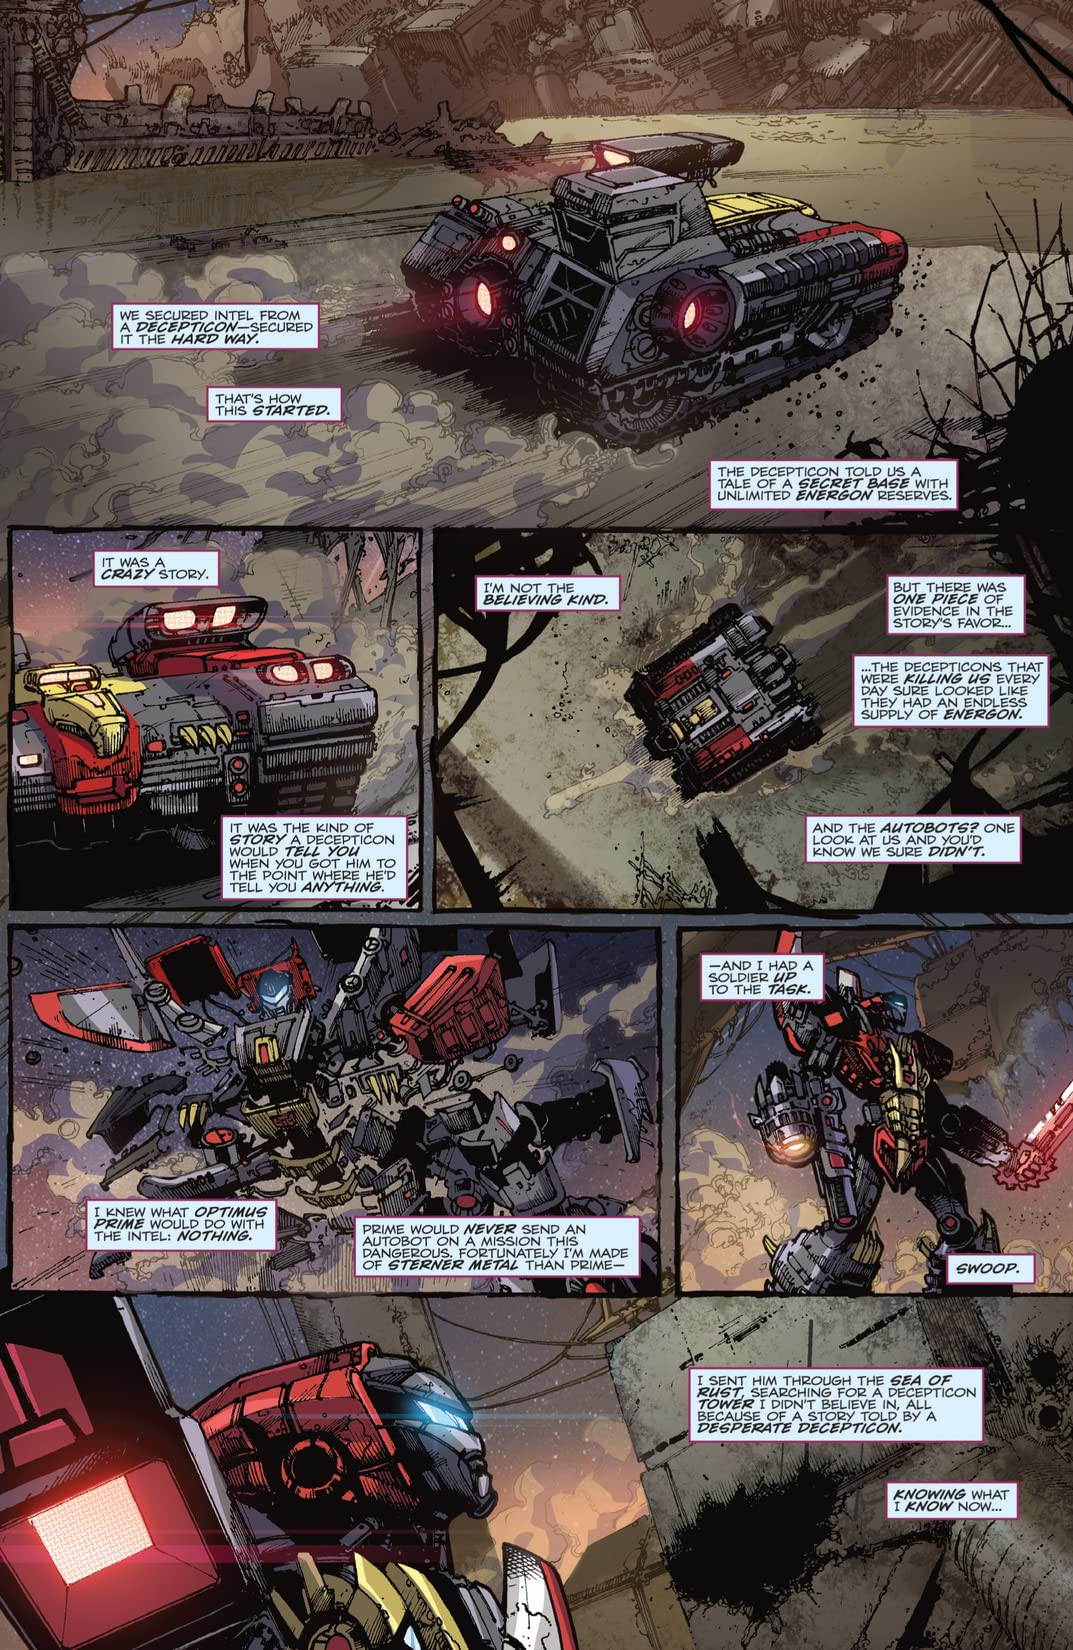 Transformers: Fall of Cybertron #2 (of 6)